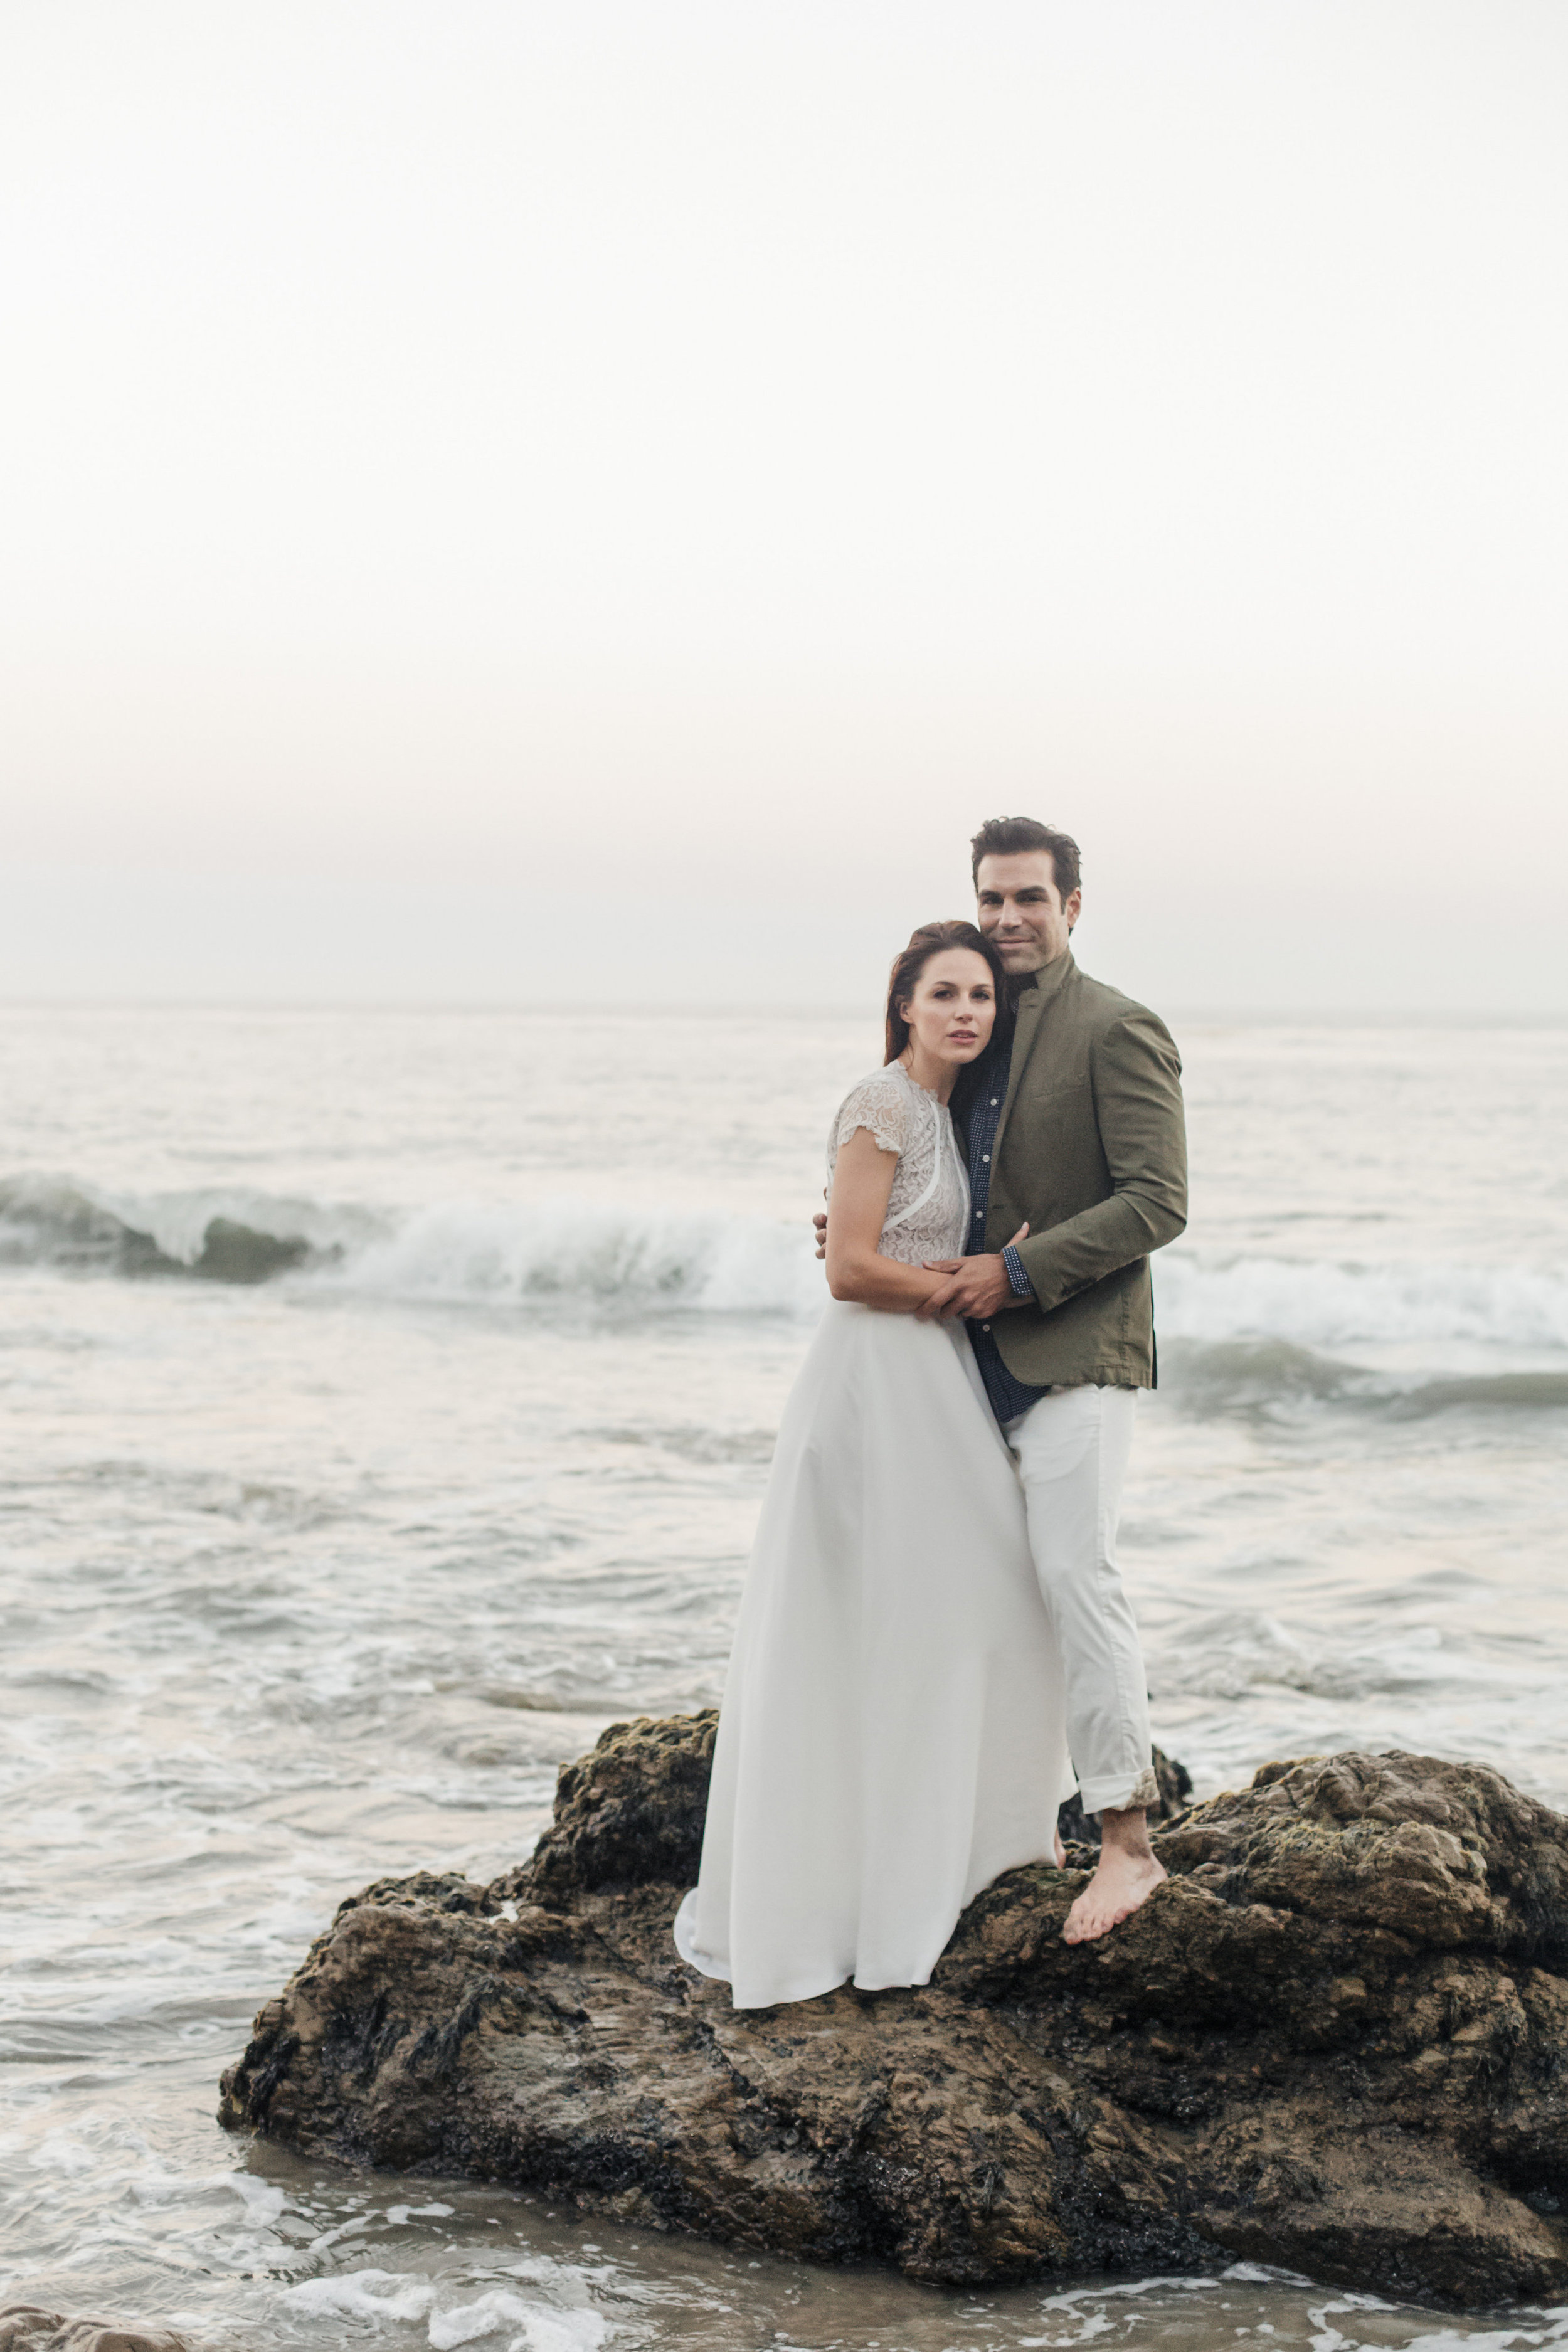 5 Year Anniversary Shoot - That Cozy Life - Image by Molly + Co.